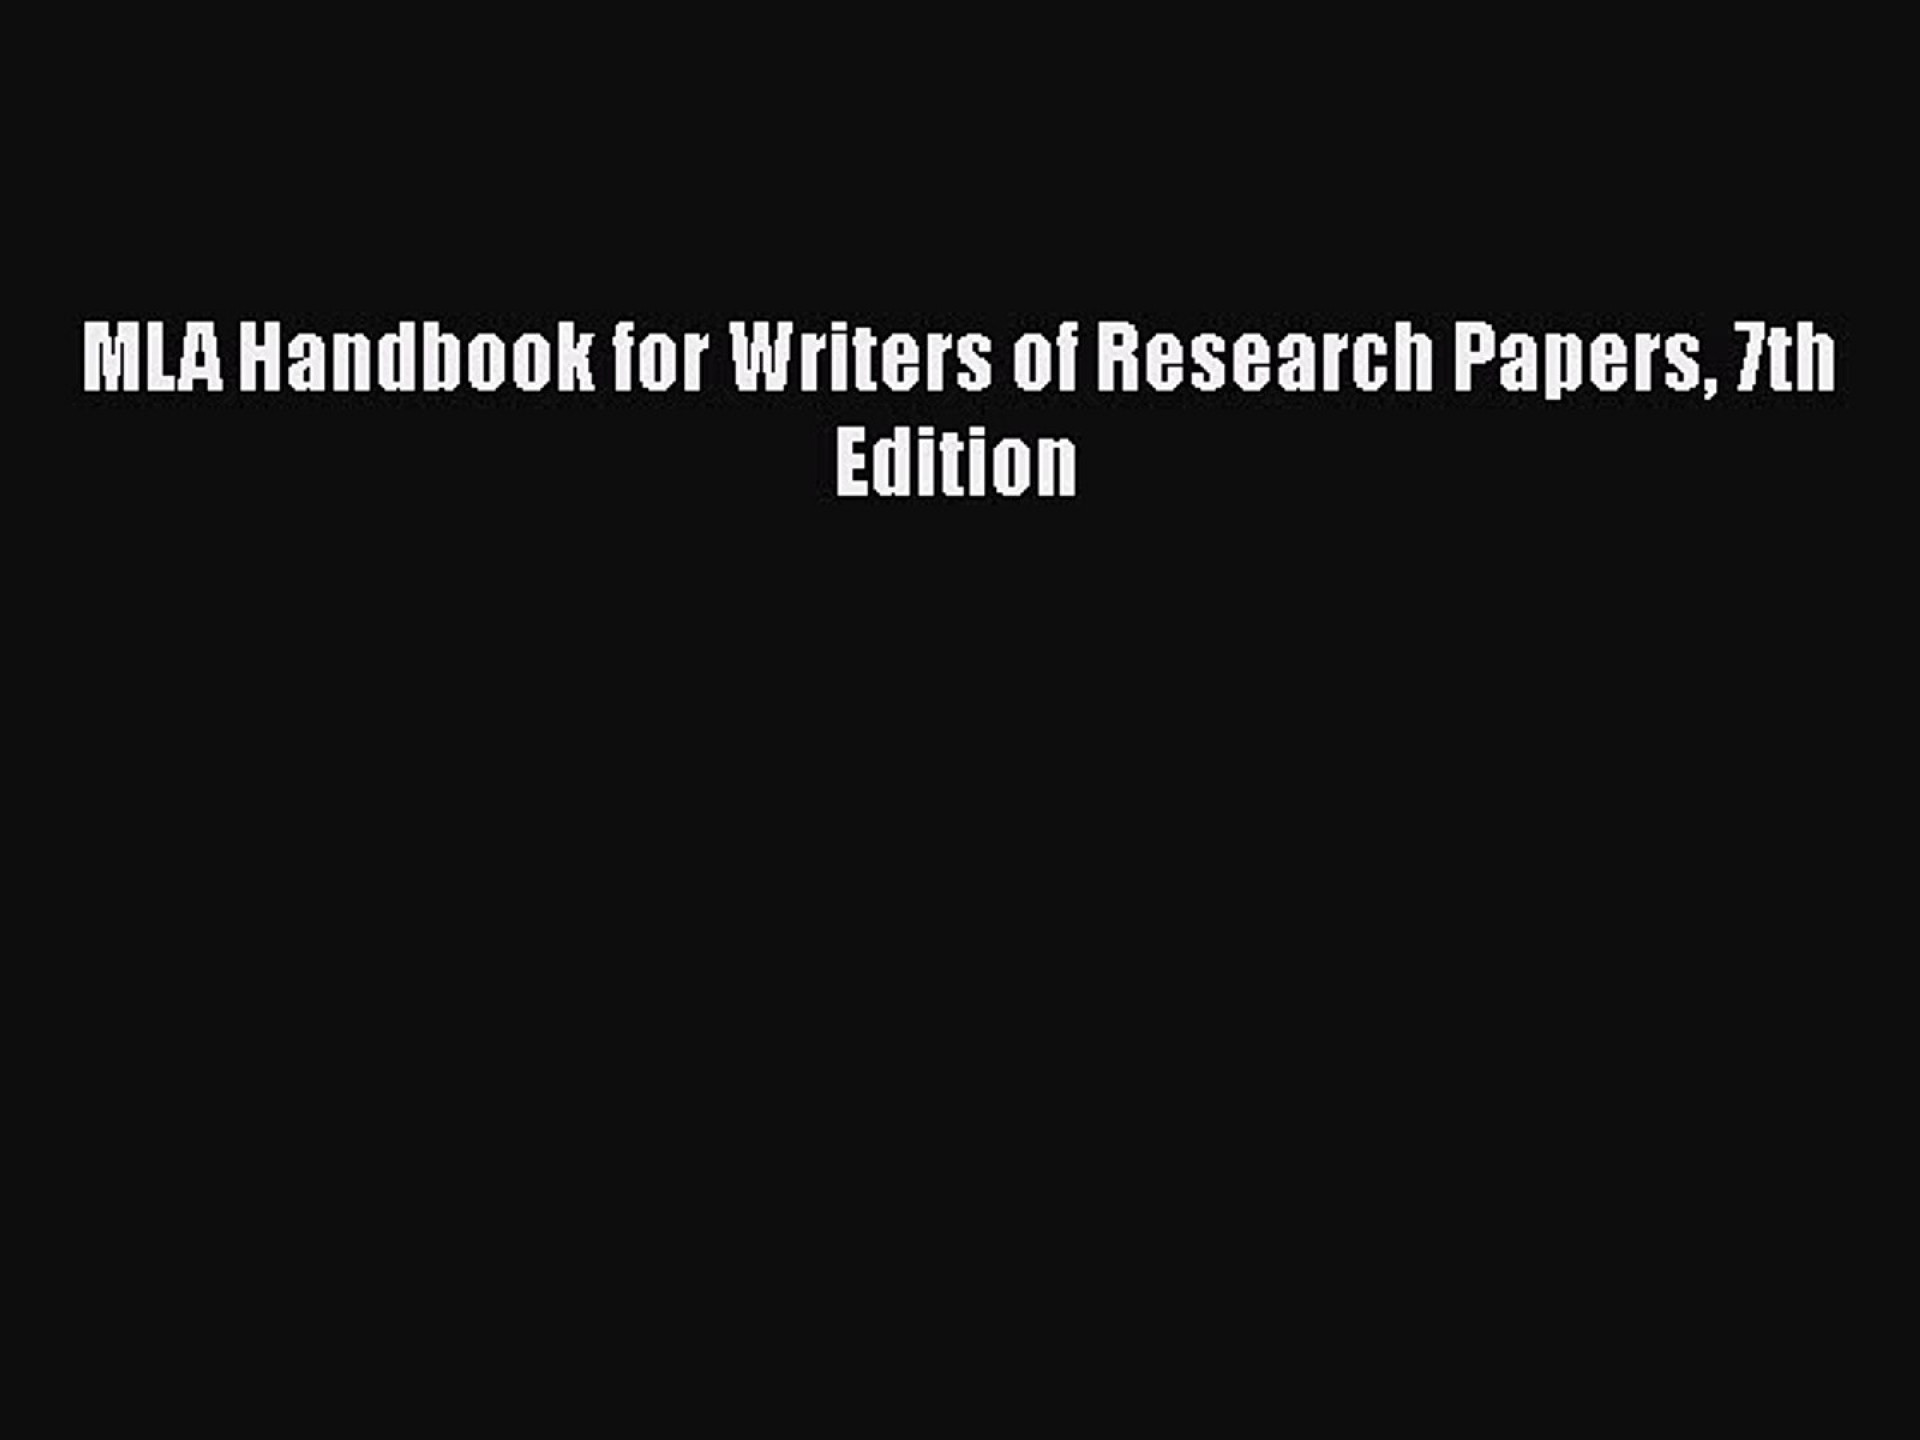 003 X1080 Zxg Mla Handbook For Writers Of Researchs 7th Edition Pdf Download Fearsome Research Papers Free 1920